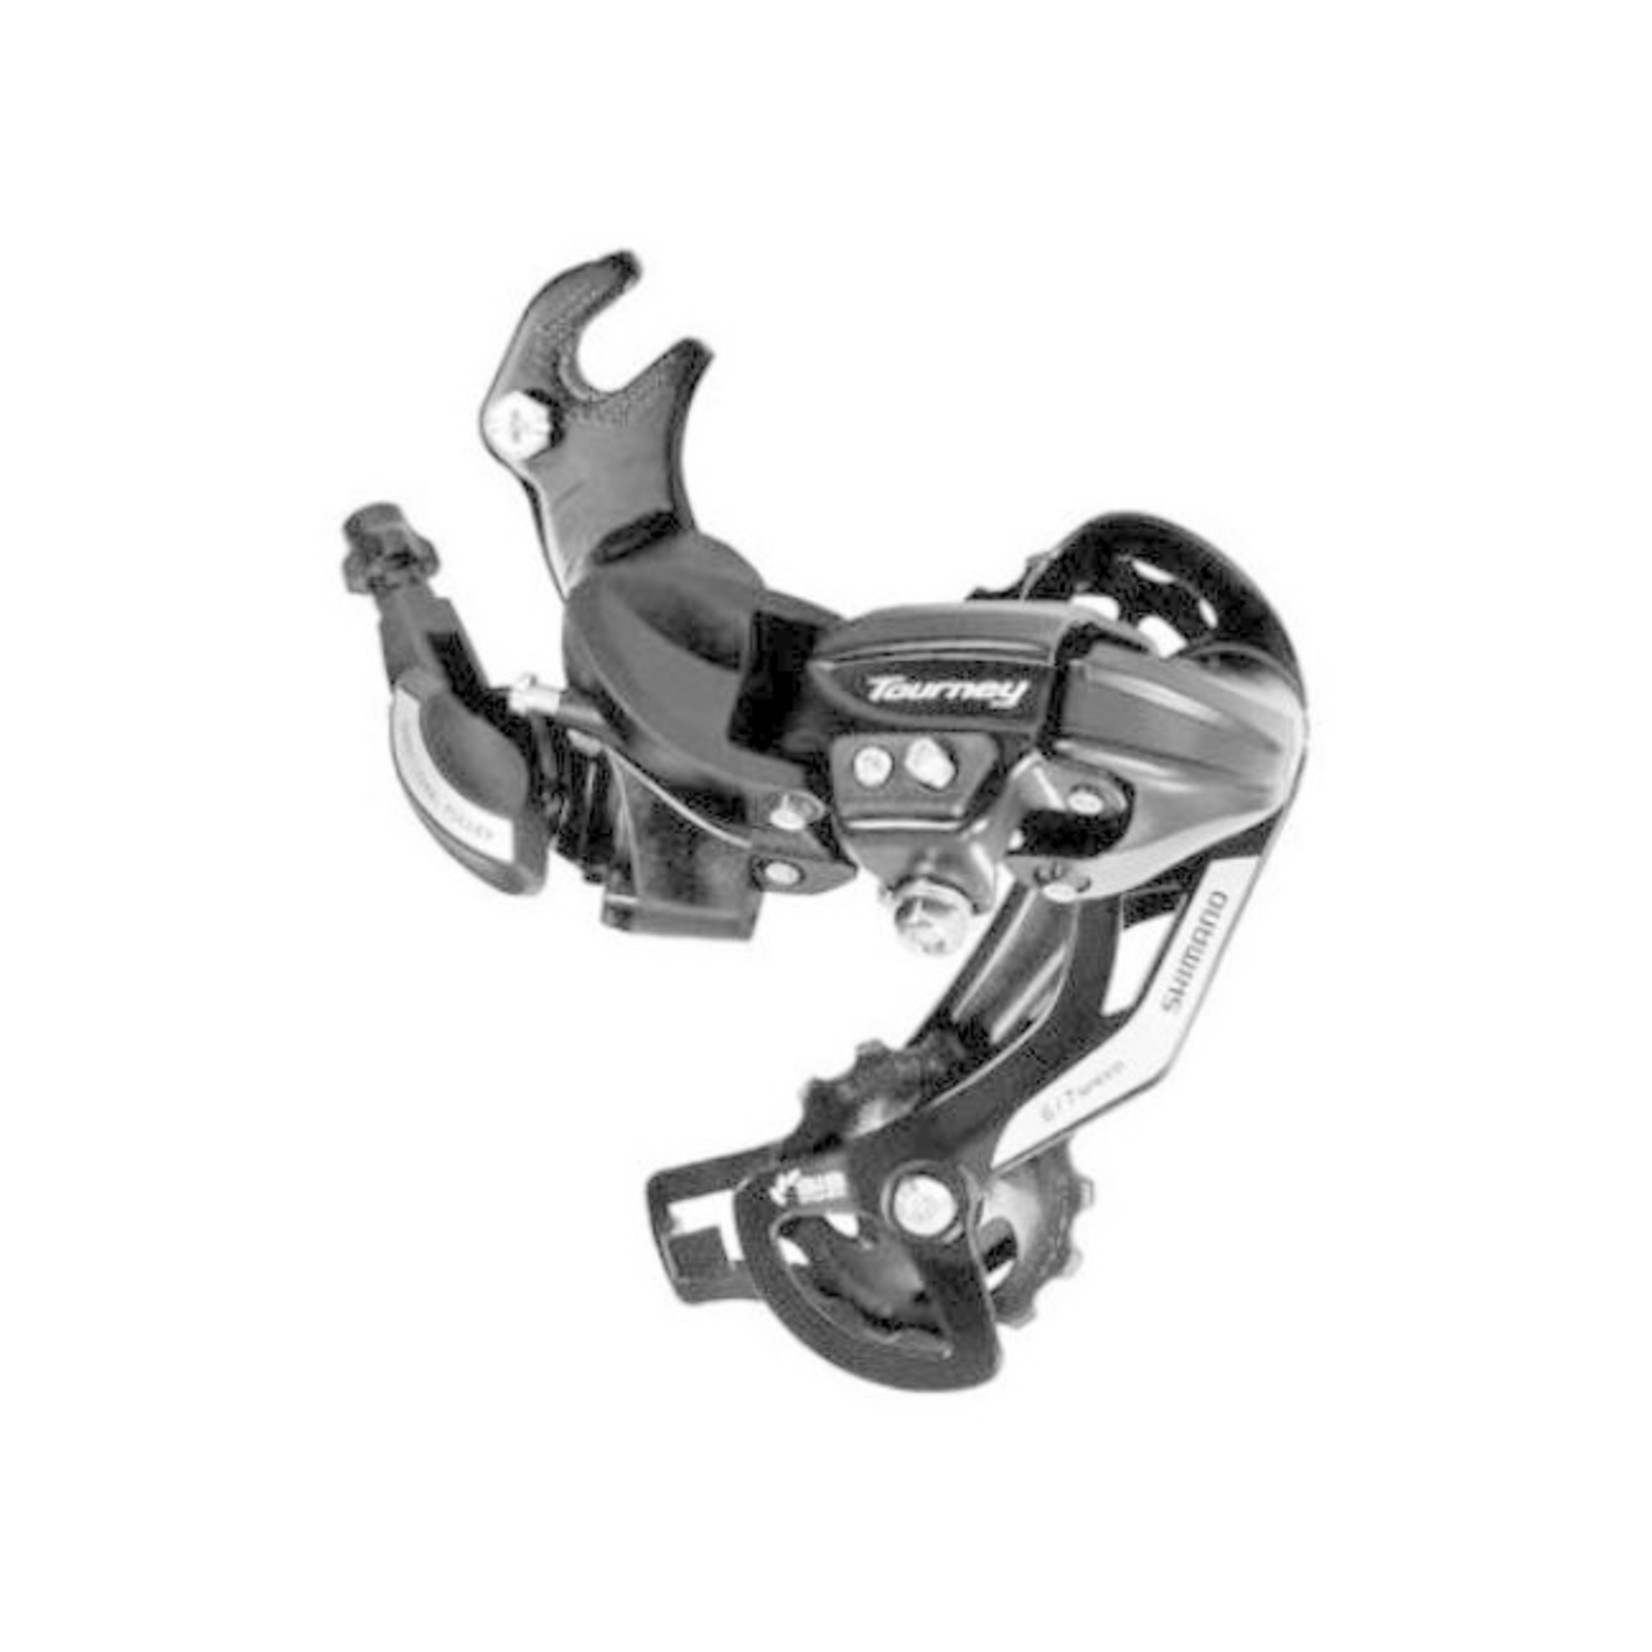 Shimano RD-TY500, TOURNEY, 6/7-SPEED, W/RIVETED ADAPTER(ROAD TYPE), W/ WHEEL TYPE CABLE GUIDE